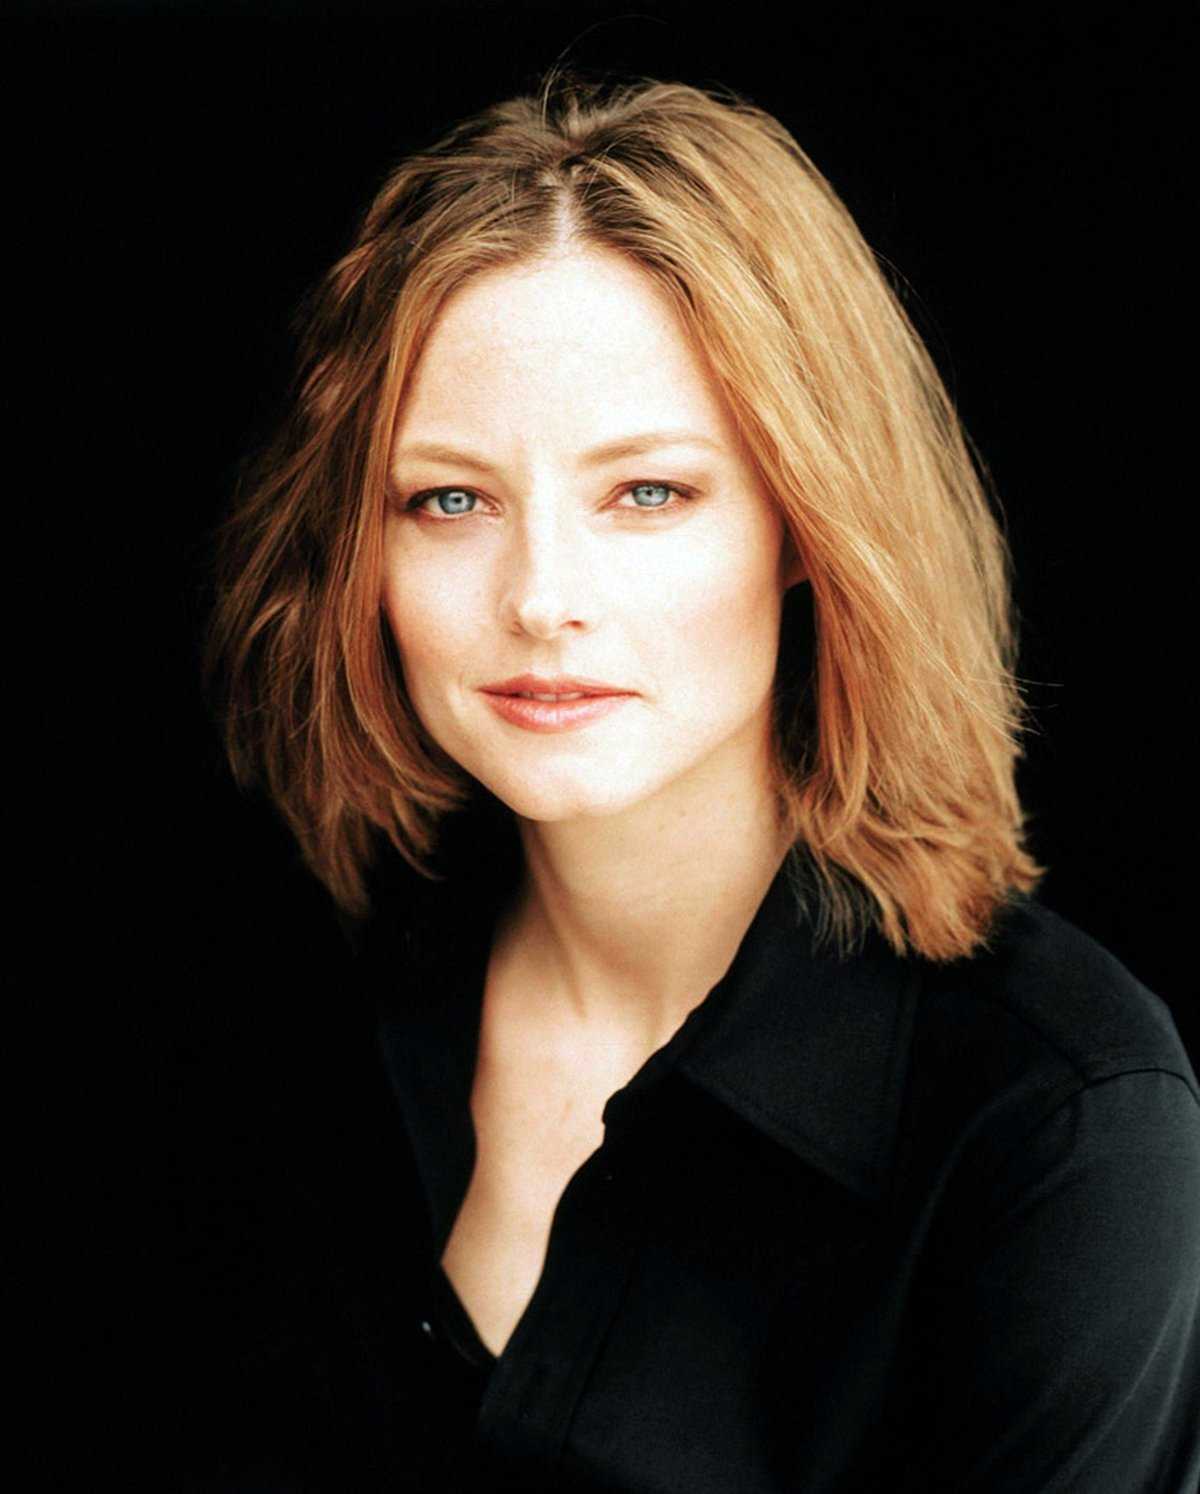 13 15 14 Things You May Not Have Realised About Jodie Foster